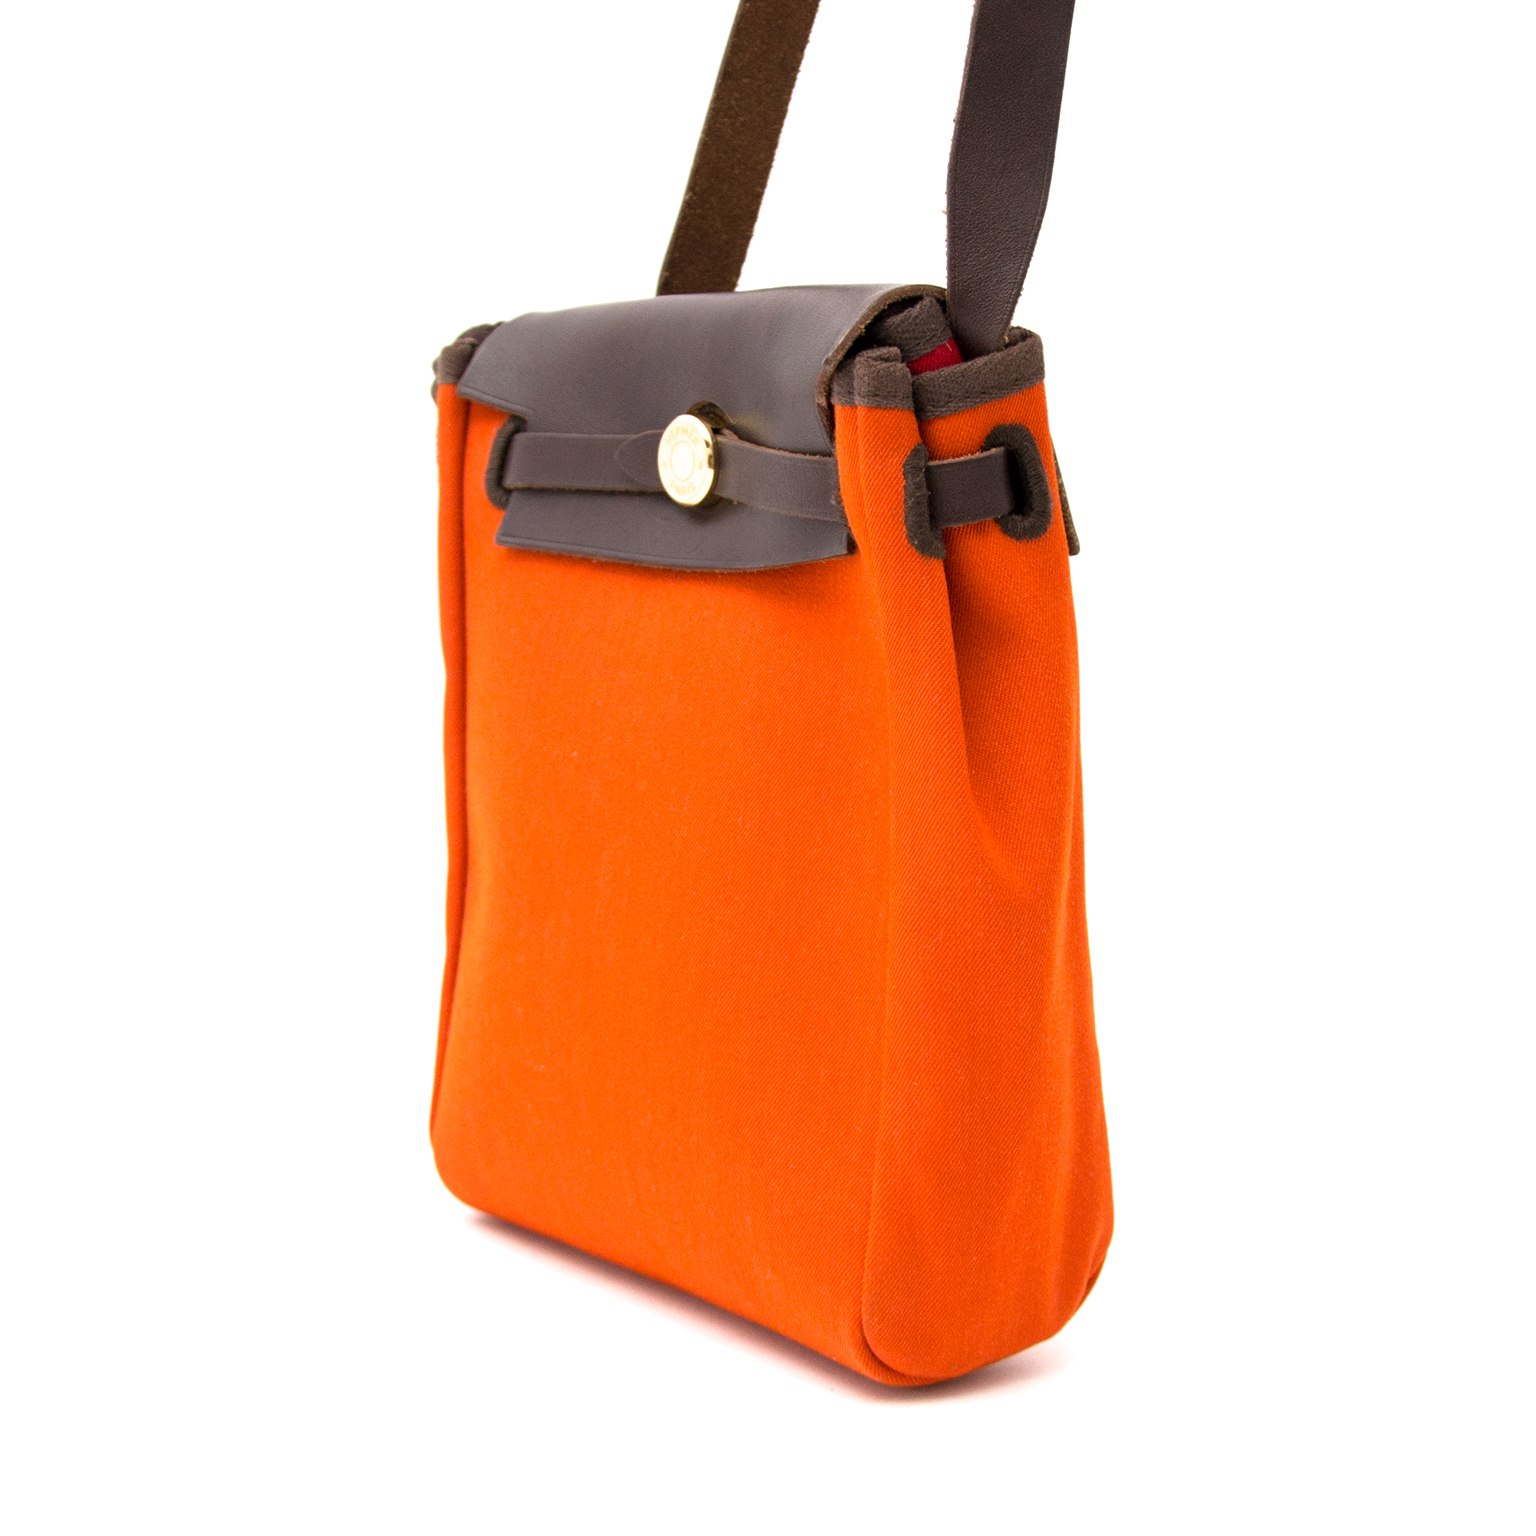 Buy now an authentic Mini Hermès Herbag without risk at Labellov Belgium in Antpwerp at the best price.